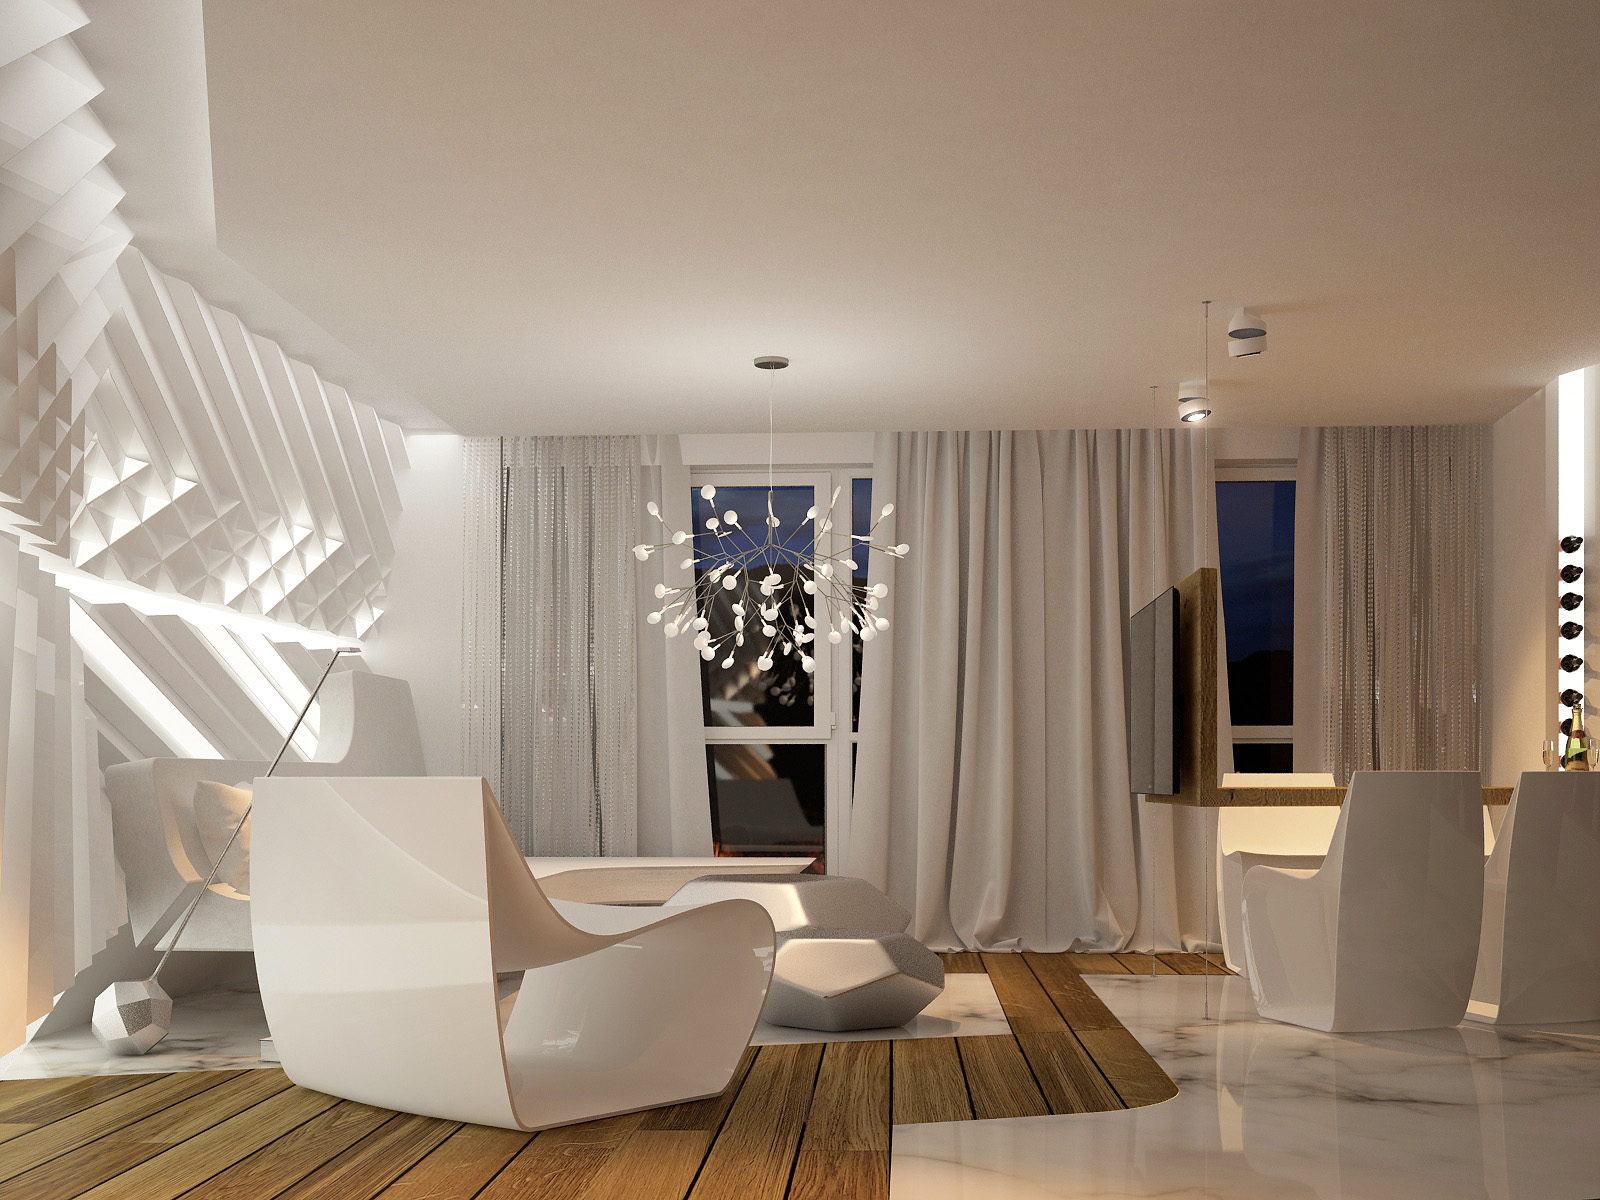 futuristic interior design - Home Interior Designing